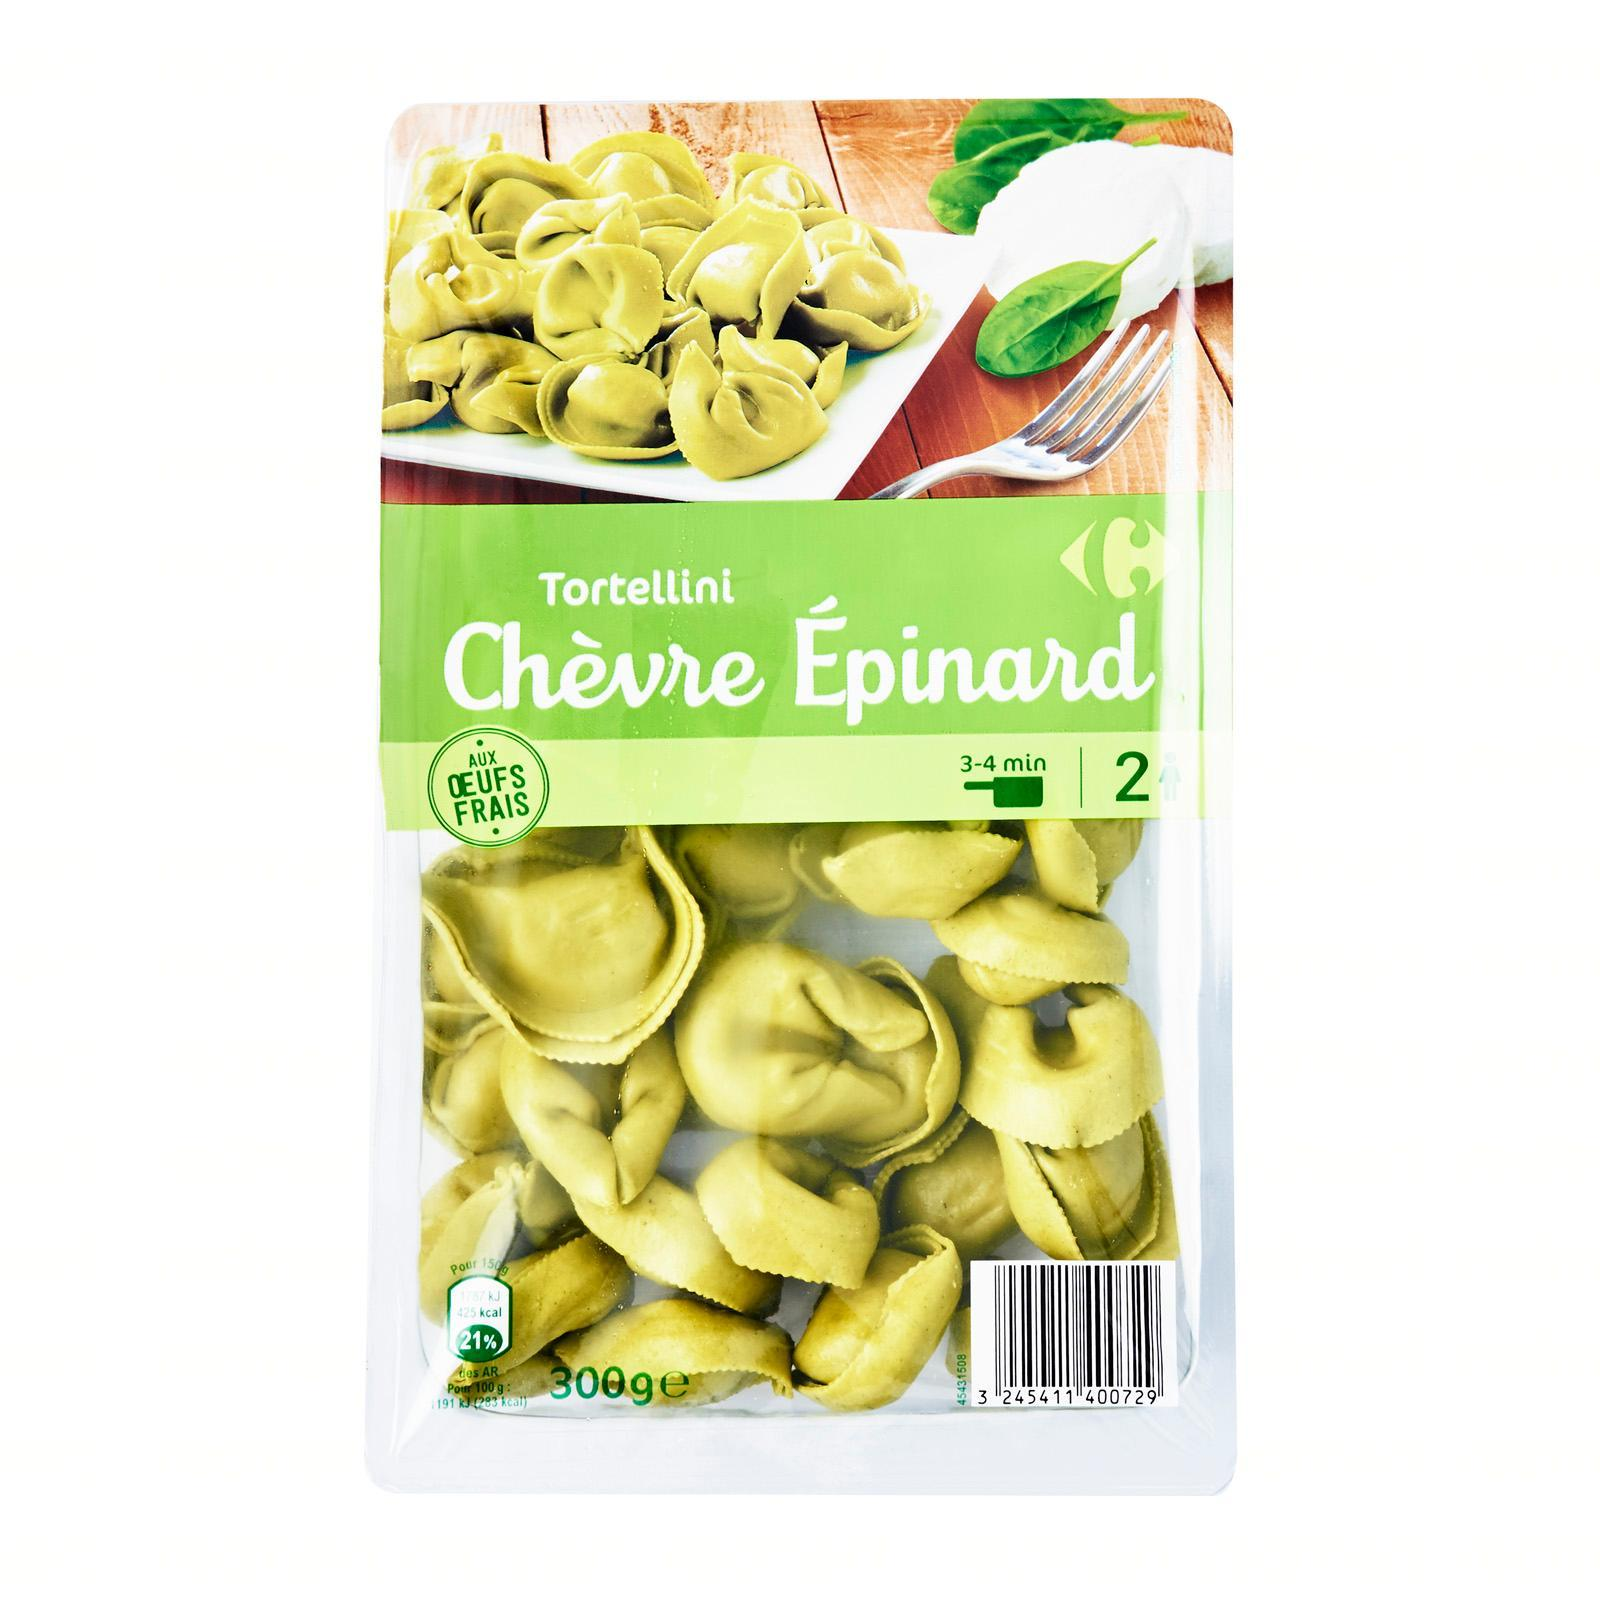 Carrefour Spinach/goat Fresh Tortellini - By Le Petit Depot By Redmart.